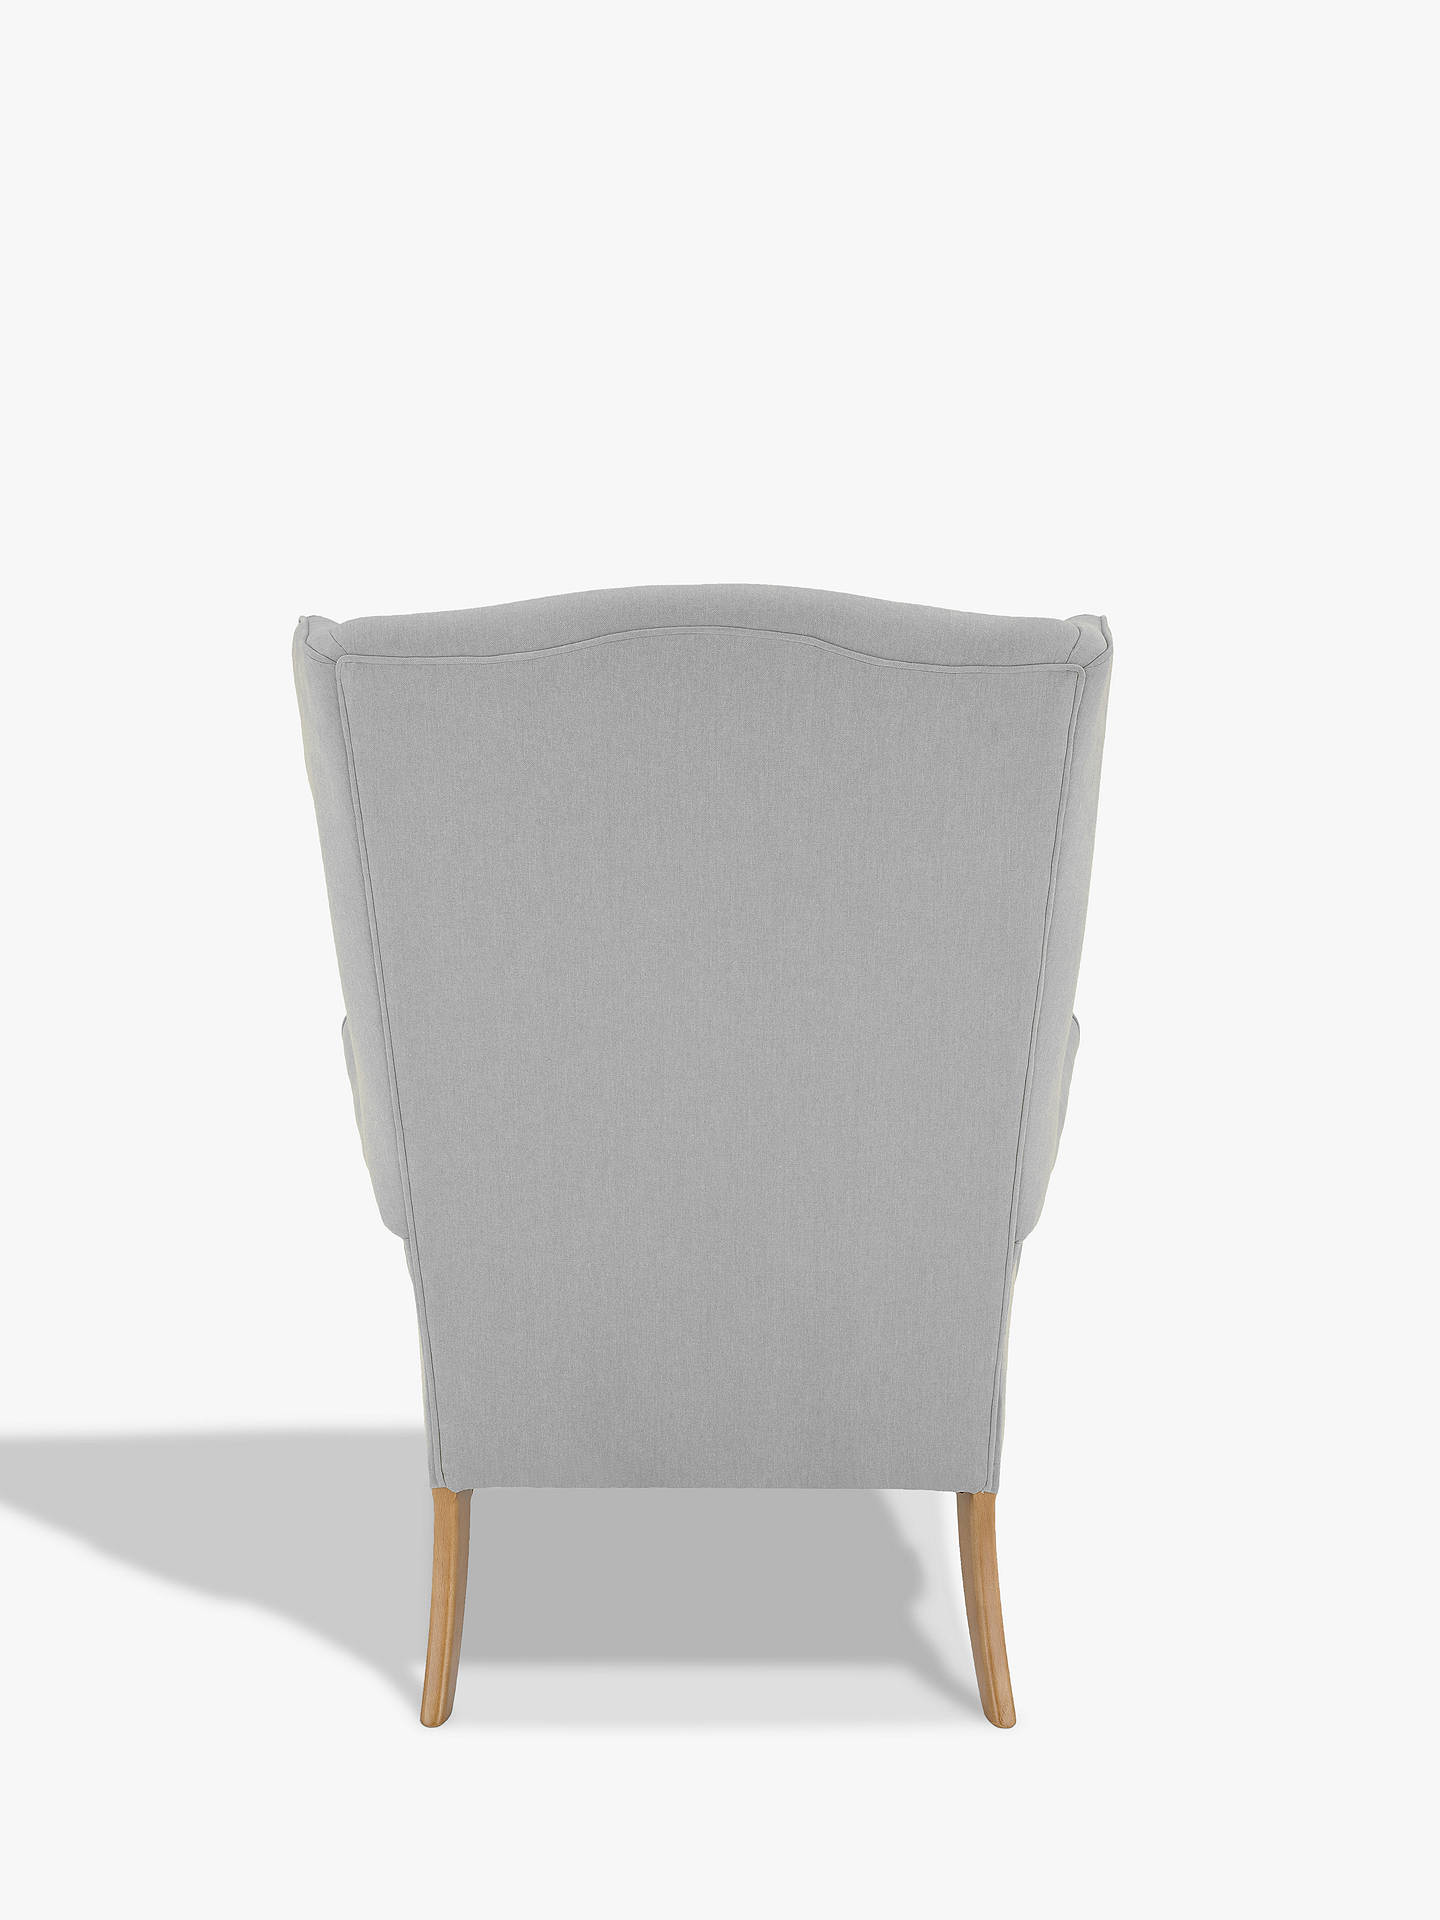 Tremendous John Lewis Shaftesbury Wing Armchair In Liberty Fabric Ocoug Best Dining Table And Chair Ideas Images Ocougorg